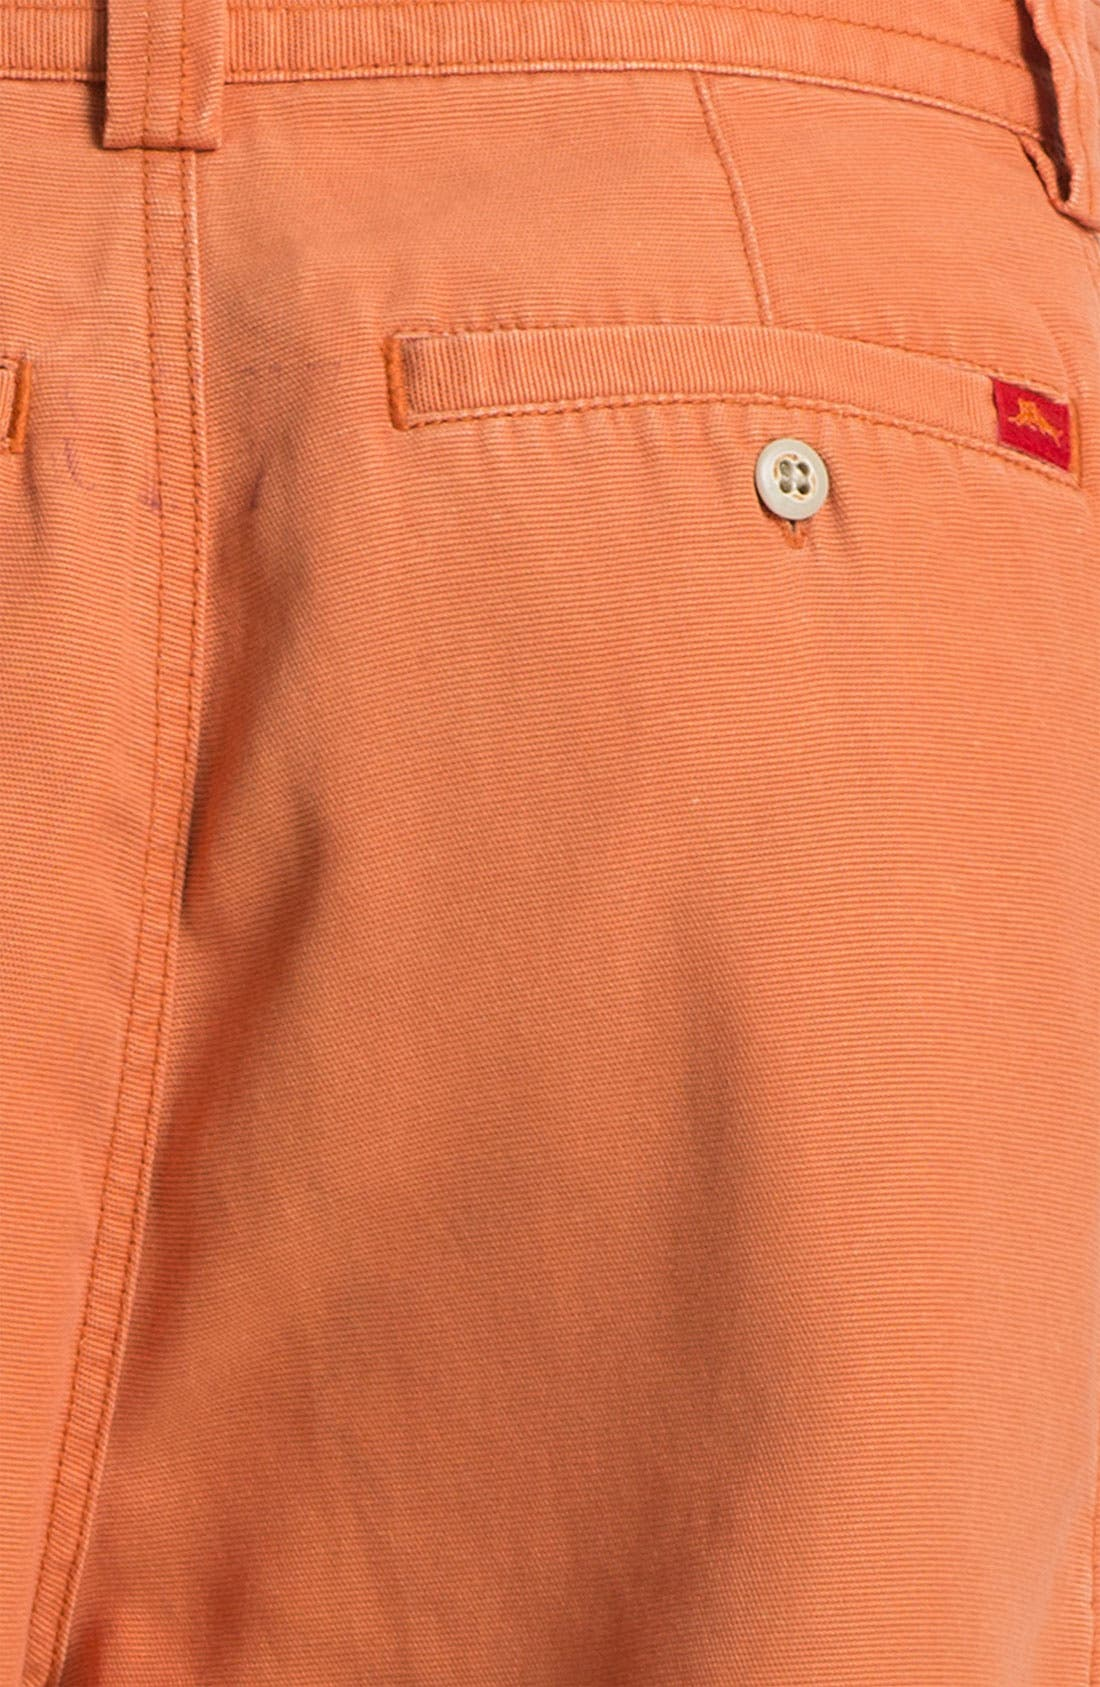 ,                             'Key Grip' Relaxed Fit Cargo Shorts,                             Alternate thumbnail 33, color,                             804